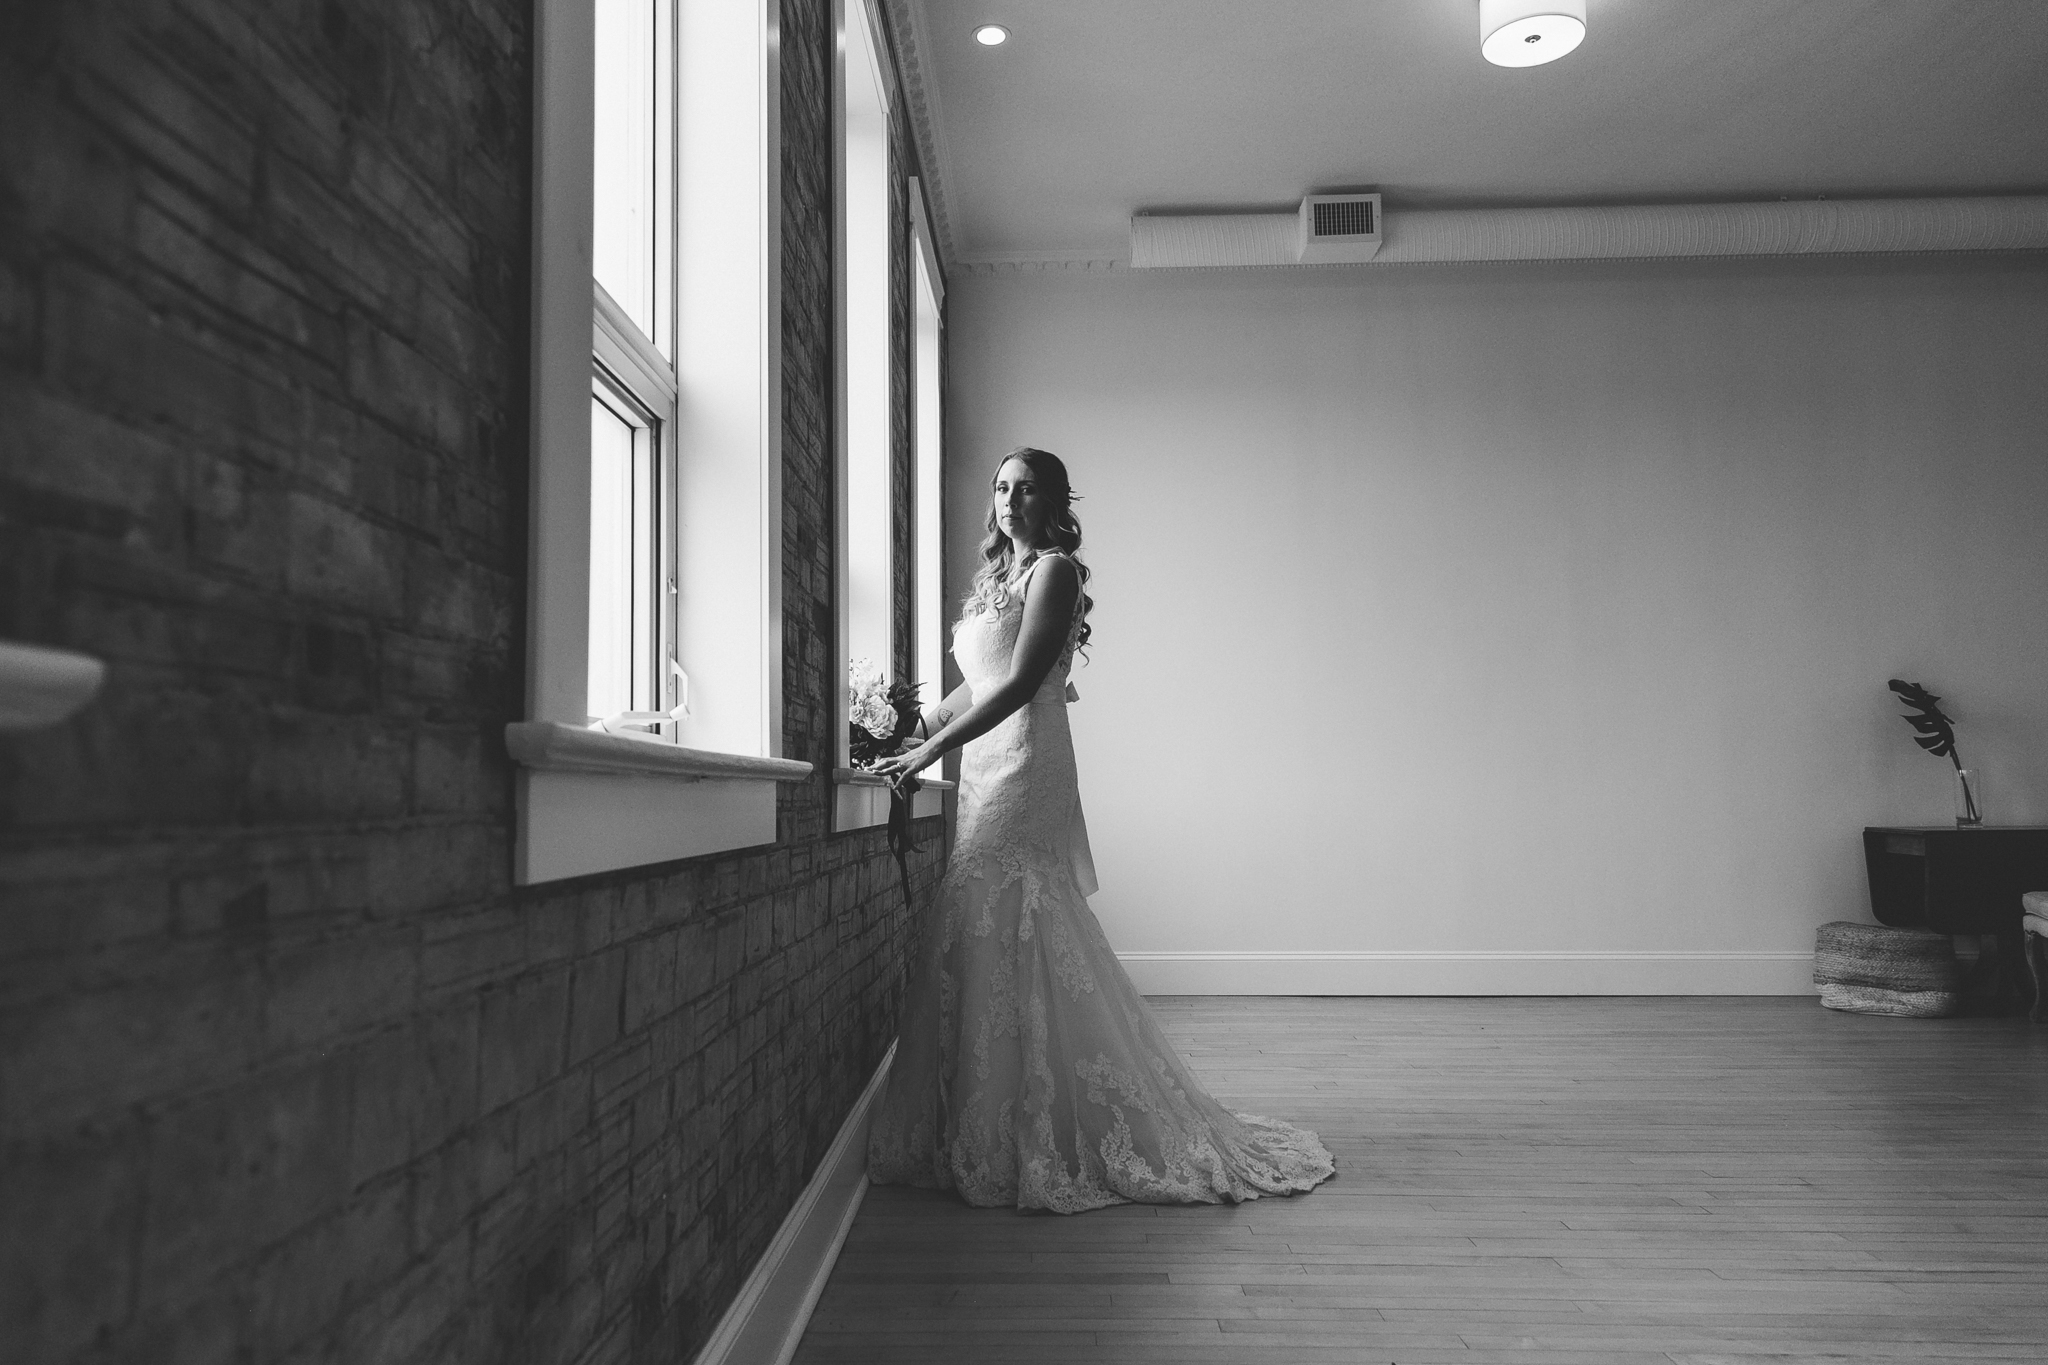 lethbridge-photographer-love-and-be-loved-photography-designed-to-dwell-wedding-katie-kelly-photo-image-picture-21.jpg